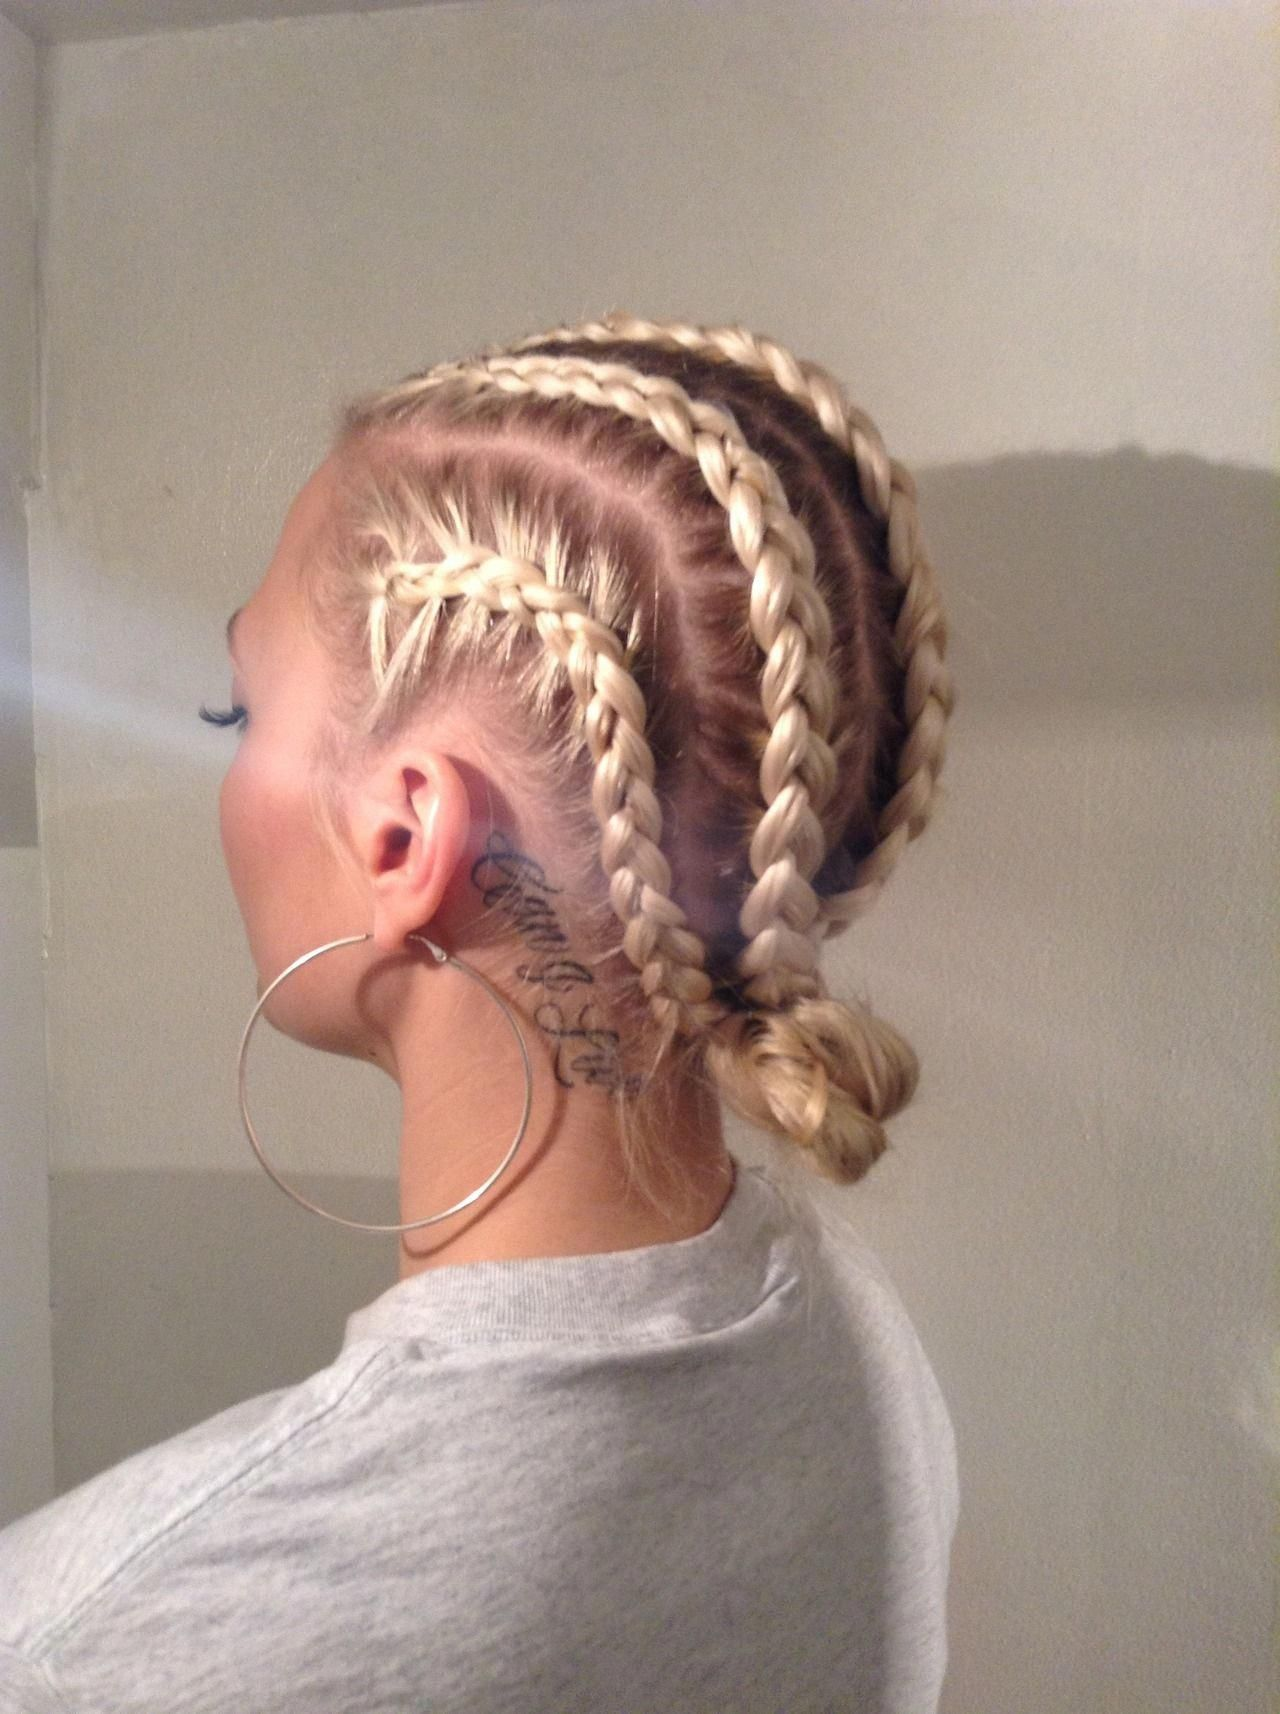 Hairstyles For Men Easy Hairstyles For Little Girls With Short Hair Little Girl Short Hair Styles 2 Hair Styles Cornrow Hairstyles White Braided Hairstyles